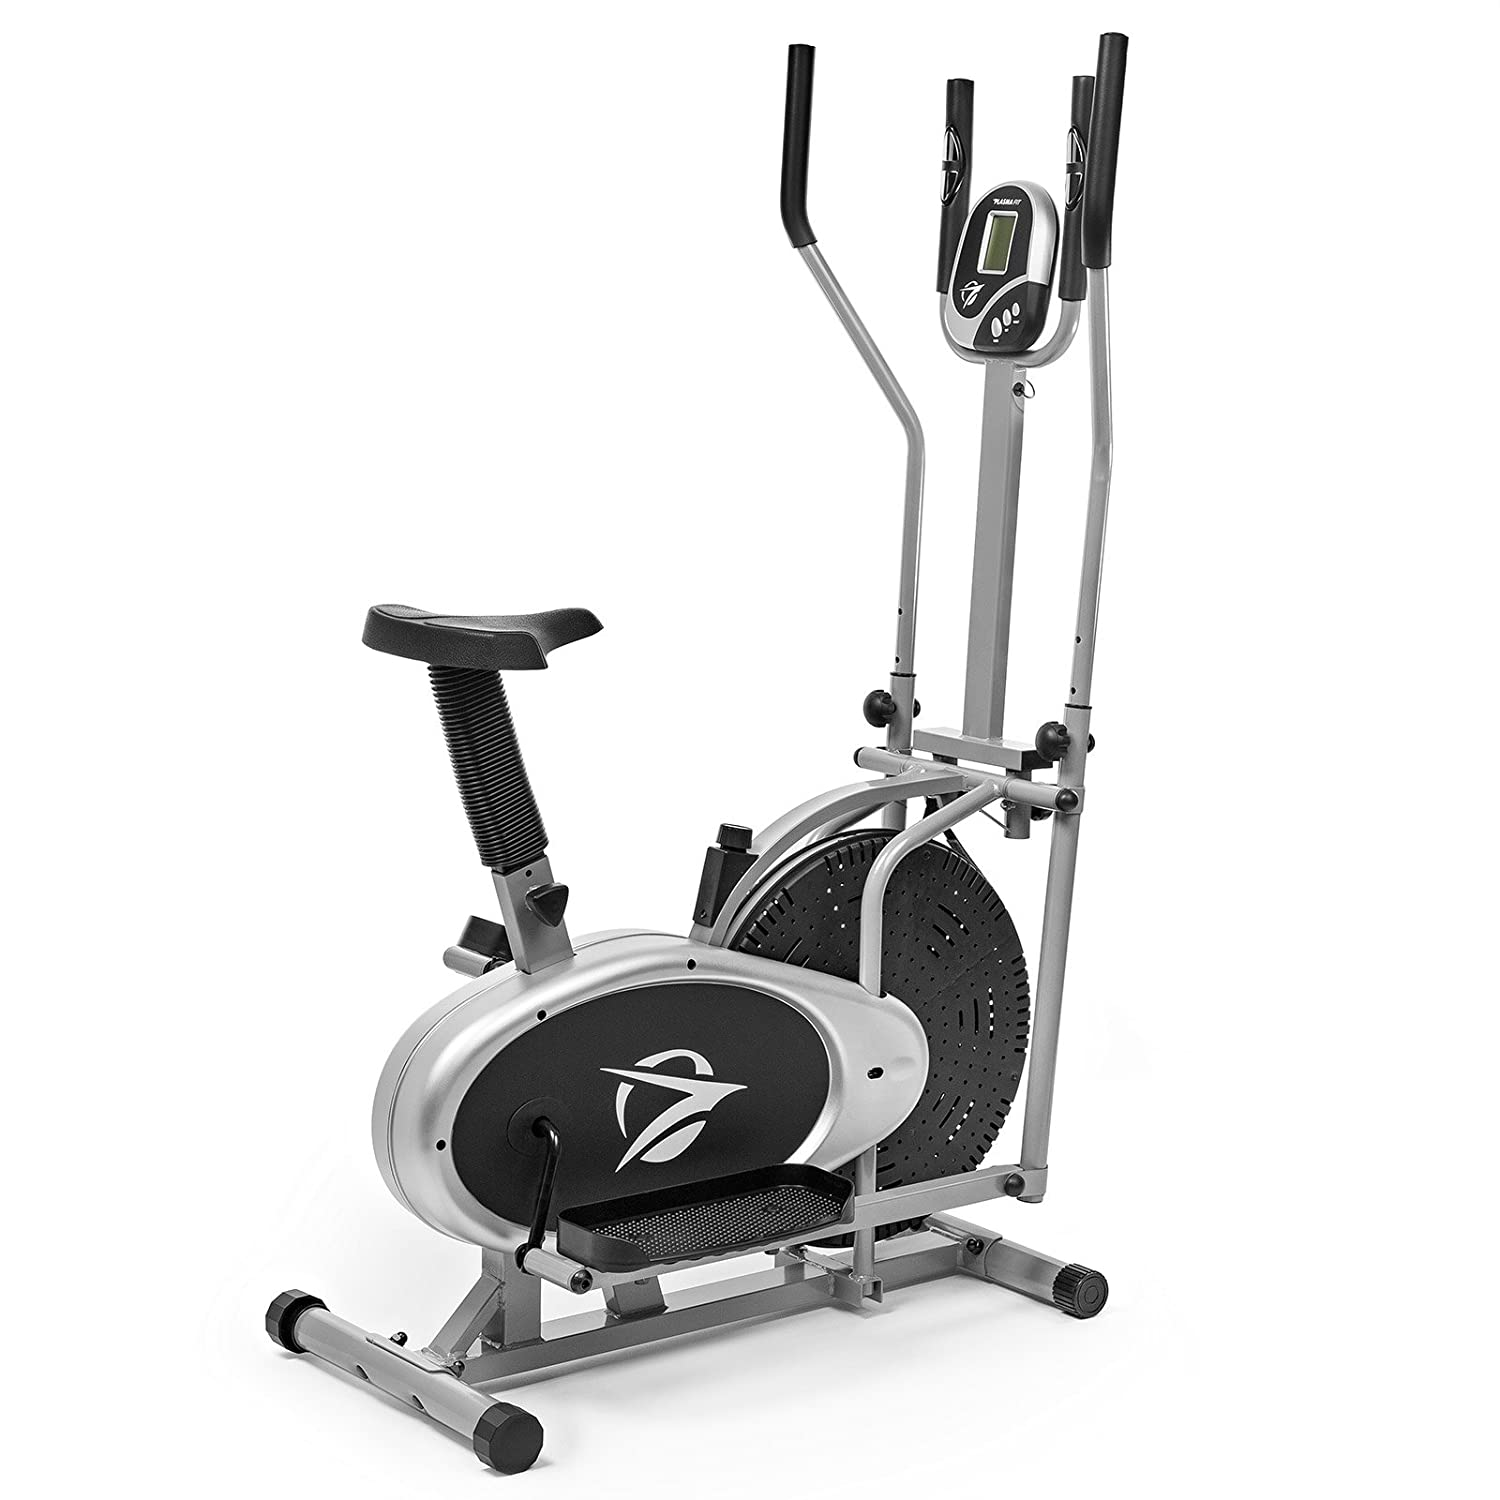 Elliptical Trainers Amazoncom - Small elliptical for home